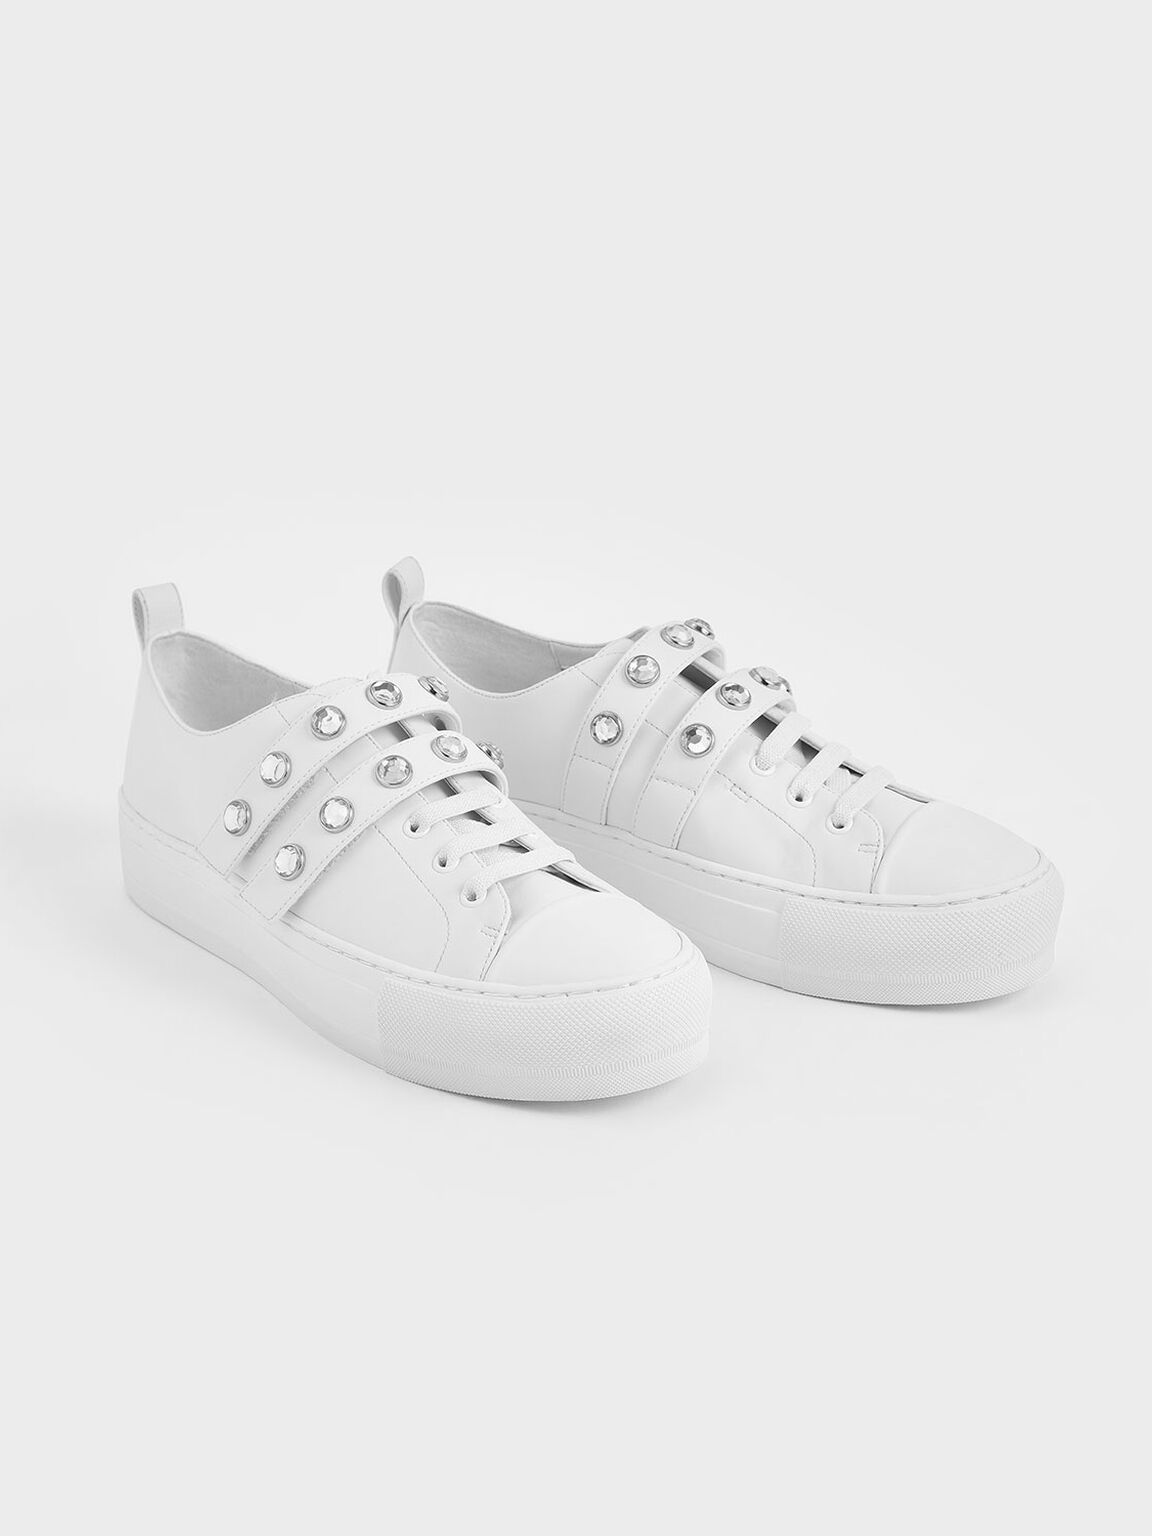 Gem-Embellished Platform Sneakers, White, hi-res